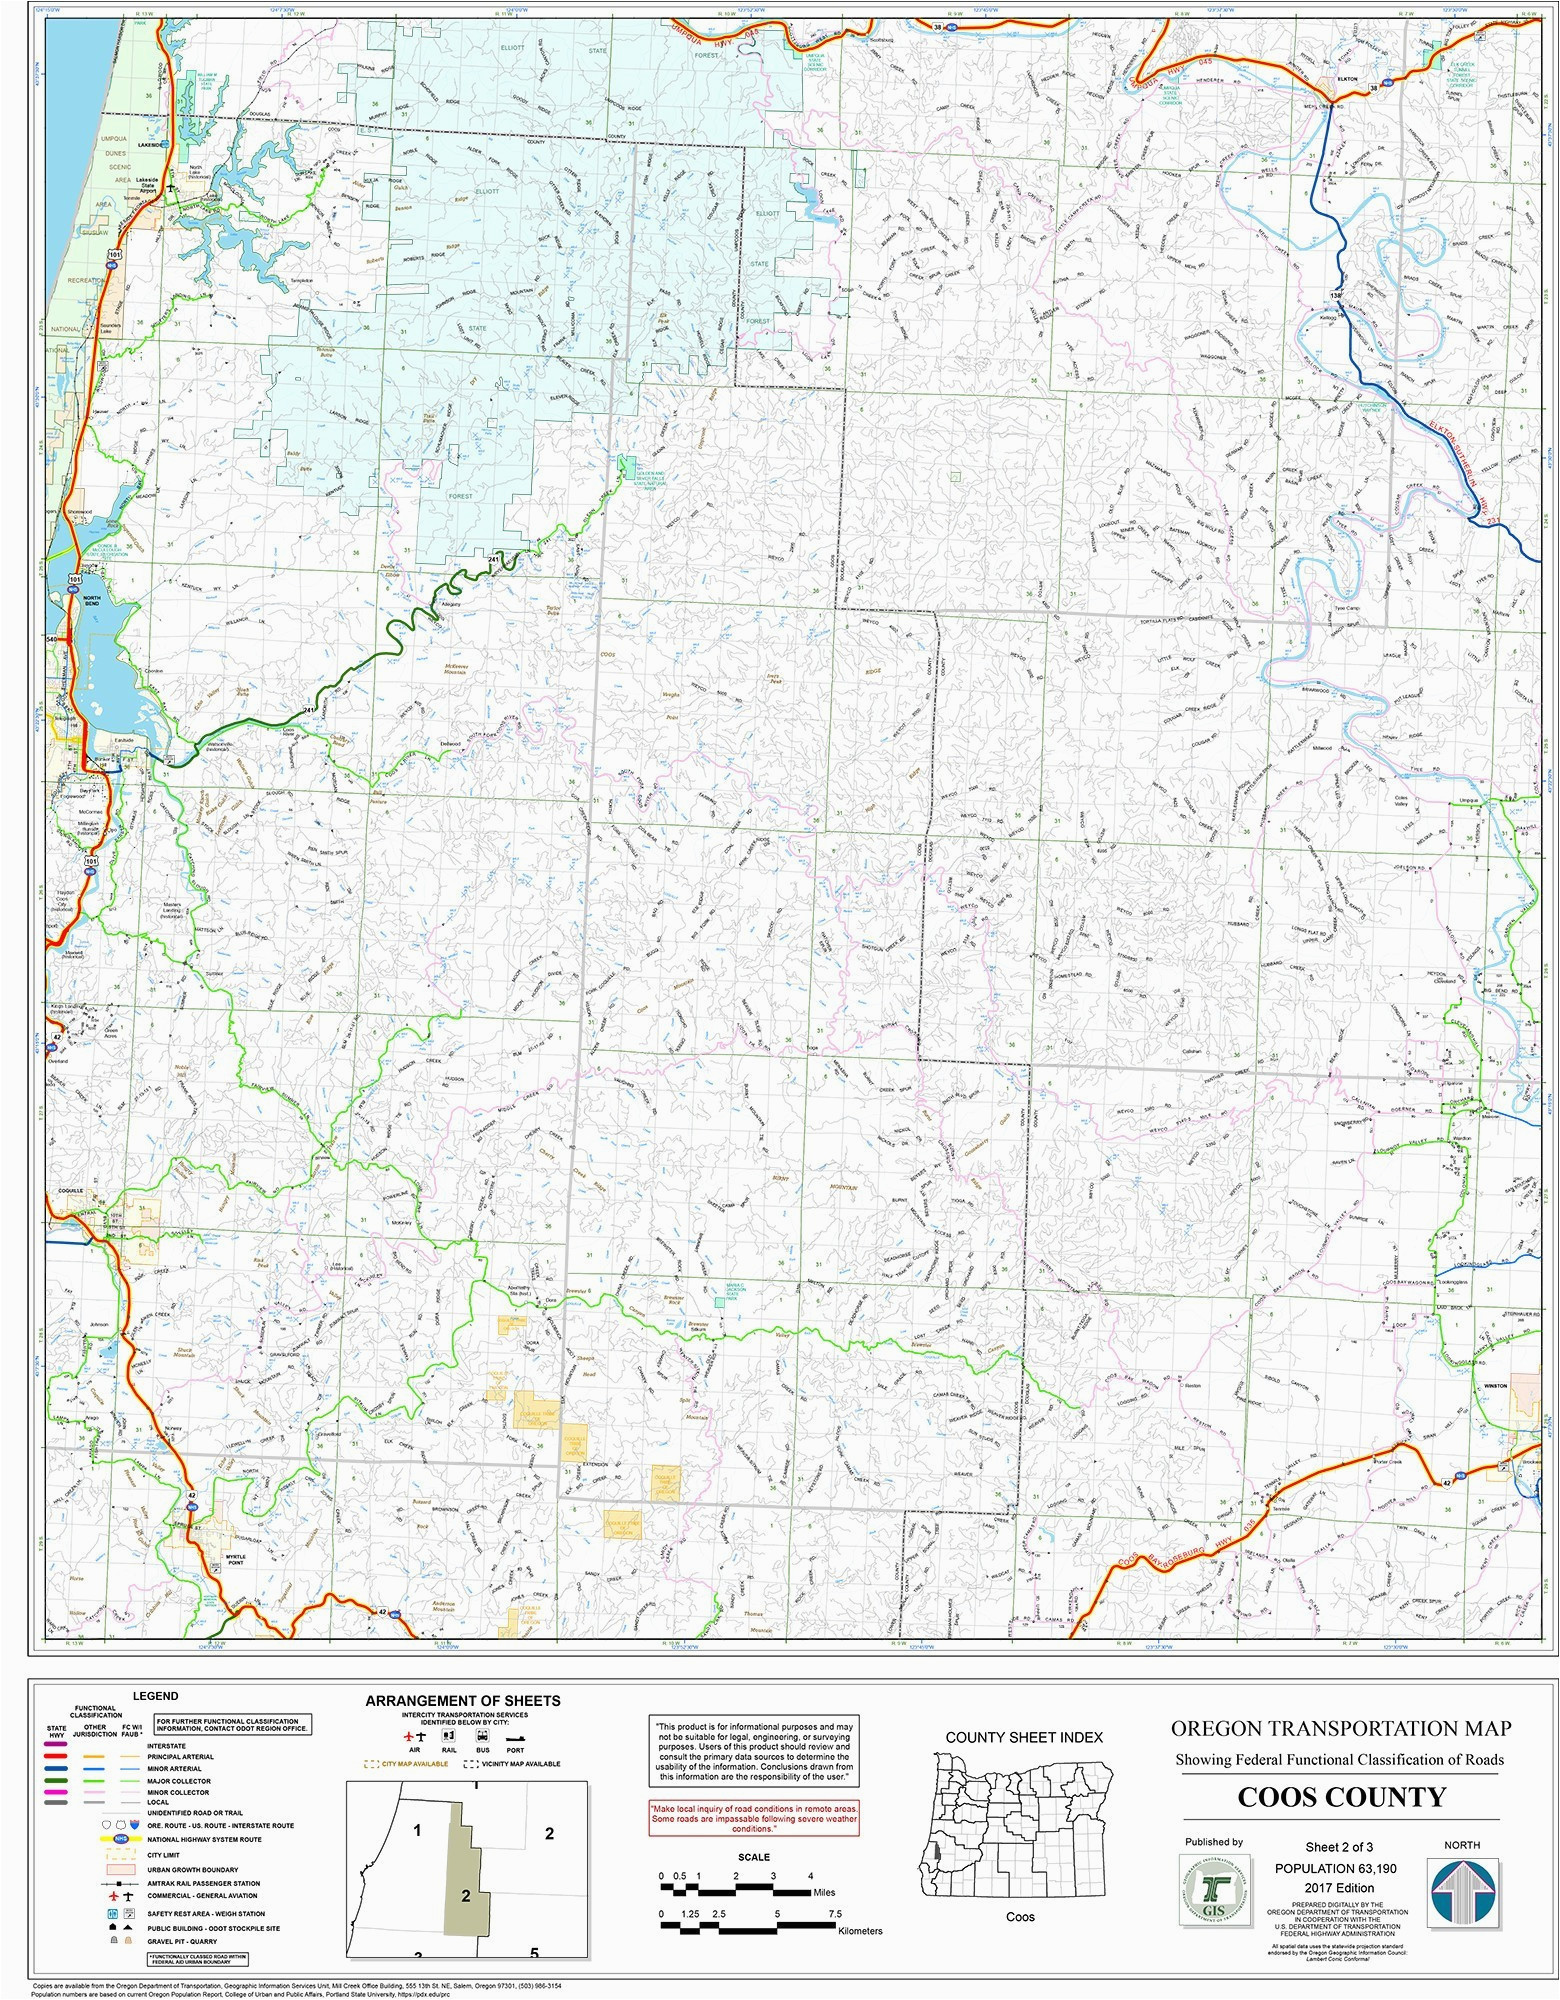 Product Map Of Texas Interactive Map Of Texas Lovely Texas Detailed Physical Map with